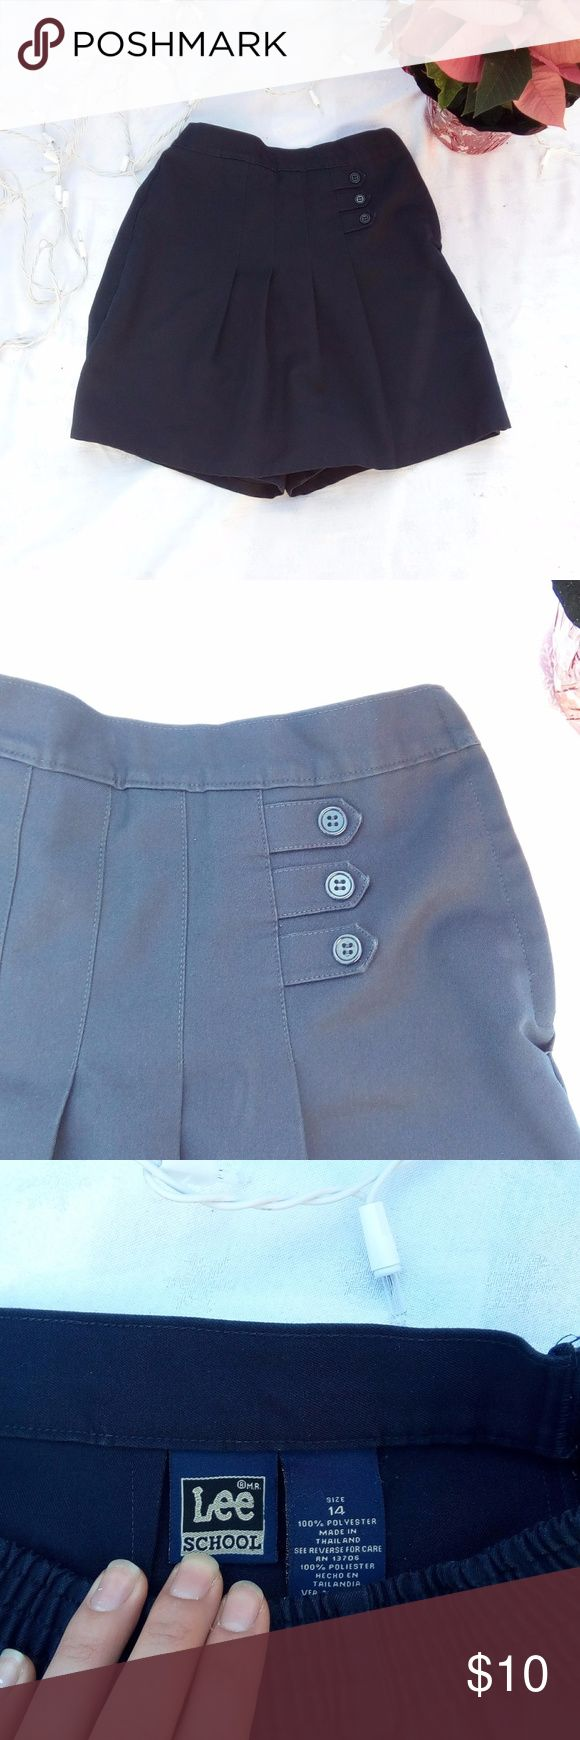 Lee School Uniform Skirt navy Blue Navy Blue School Uniform Skirt Built in shorts Lee Like New Condition Girls size 14 Lee Bottoms Skirts